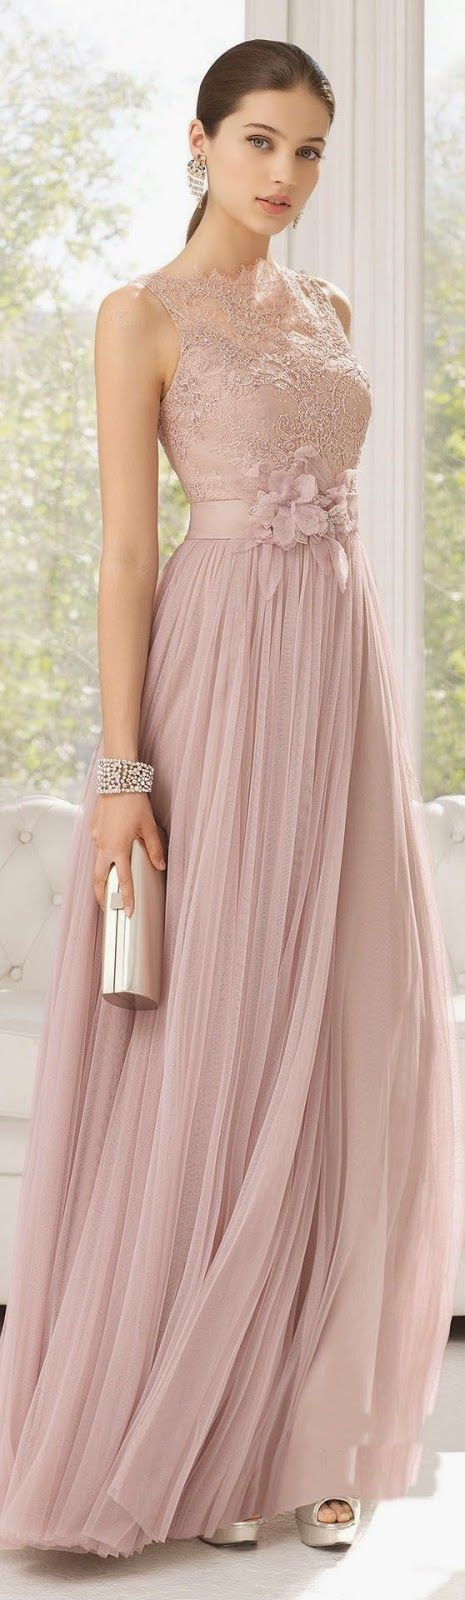 Women's Cute Fashion: Top 5 Elegant dress